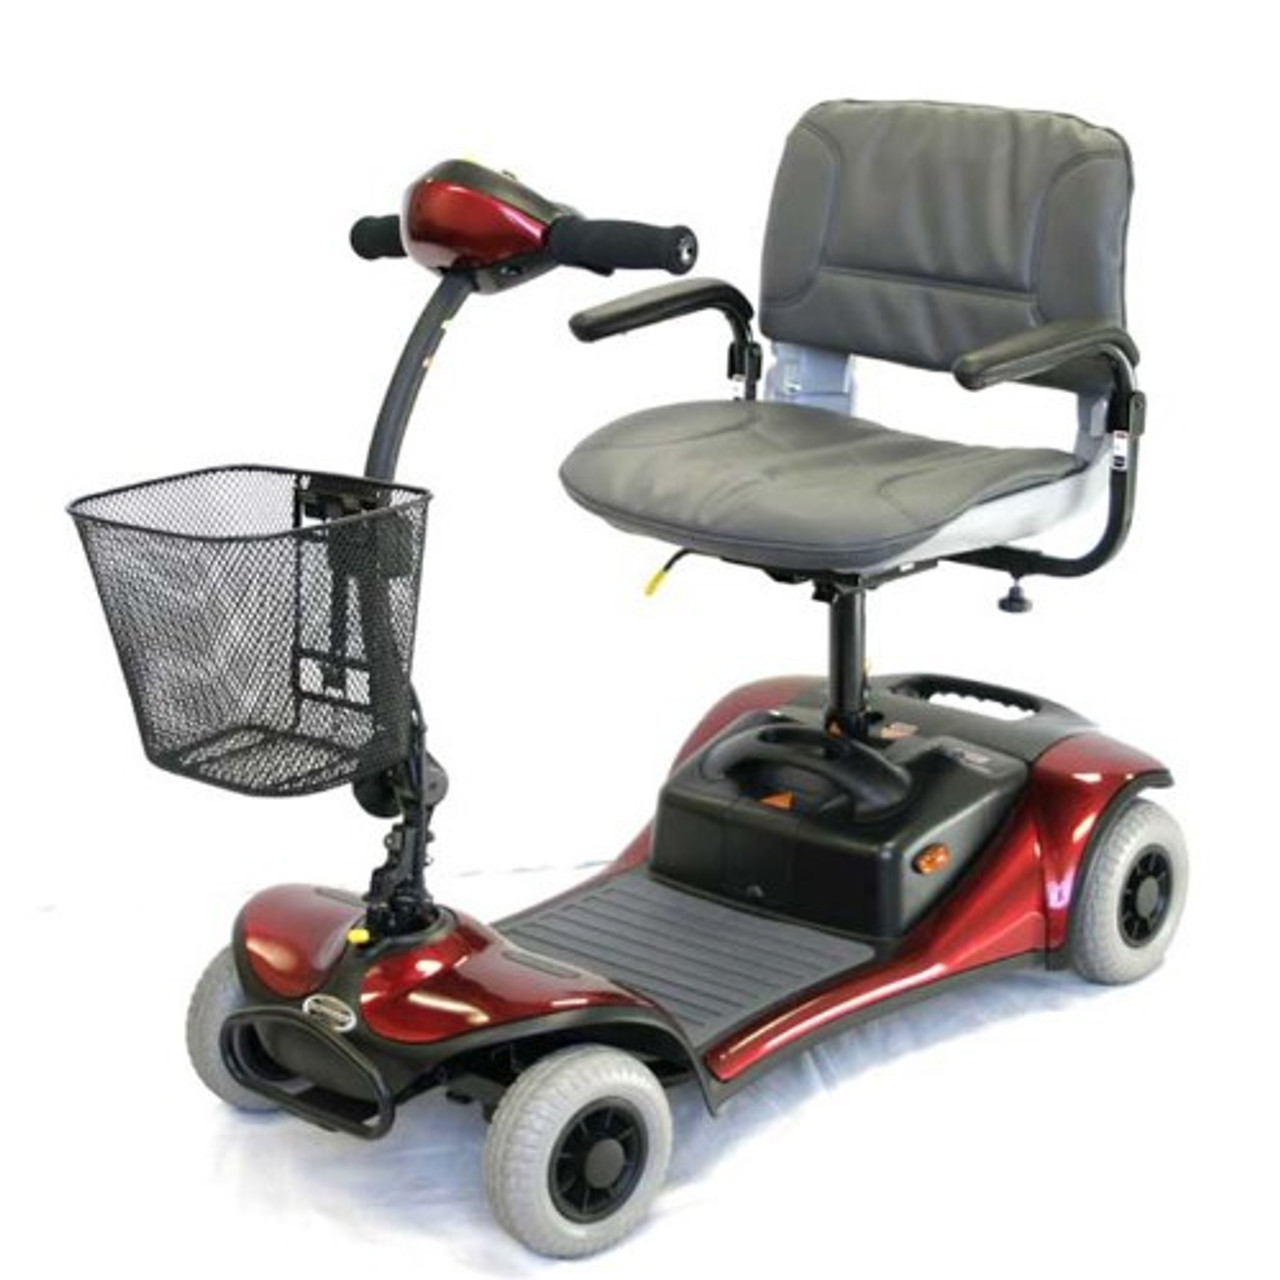 Typical small mobility scooter